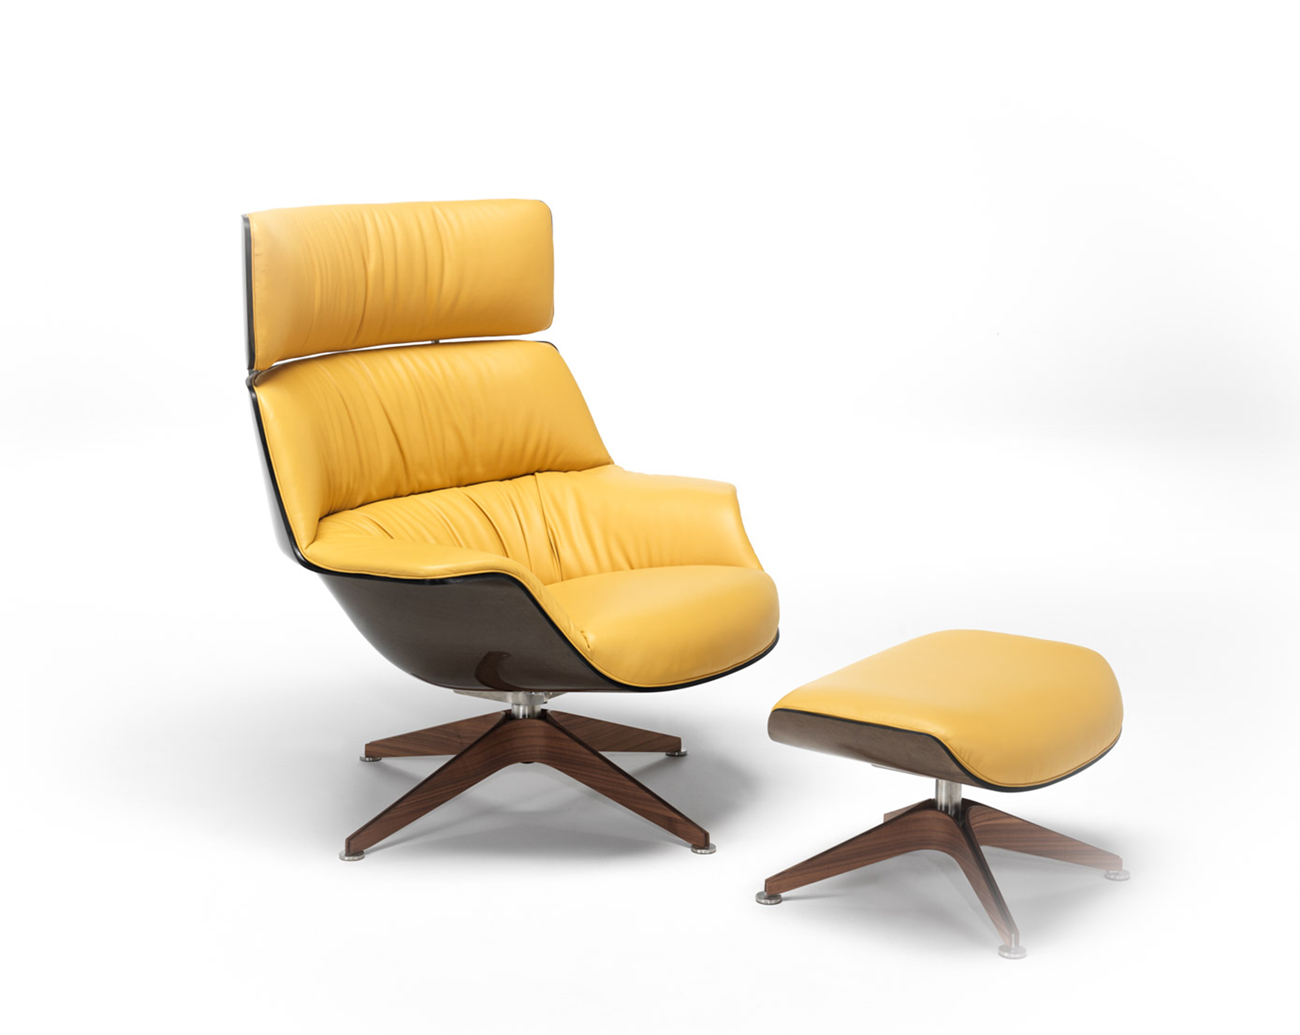 Coach armchair, Jean-Marie Massaud, Saintluc